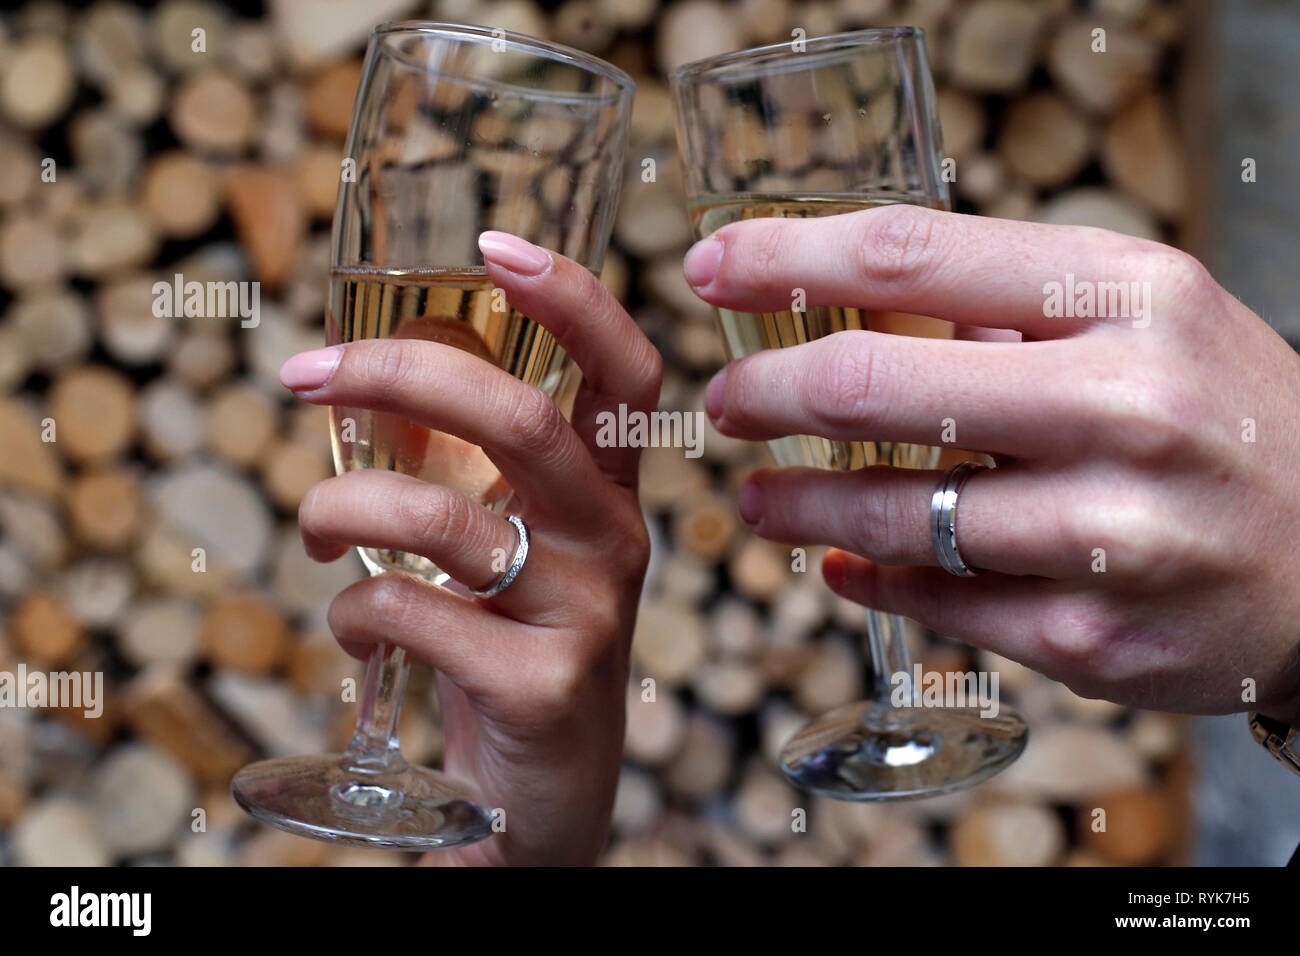 Two glasses of champagne, romantic celebration of engagement or anniversary. France. - Stock Image